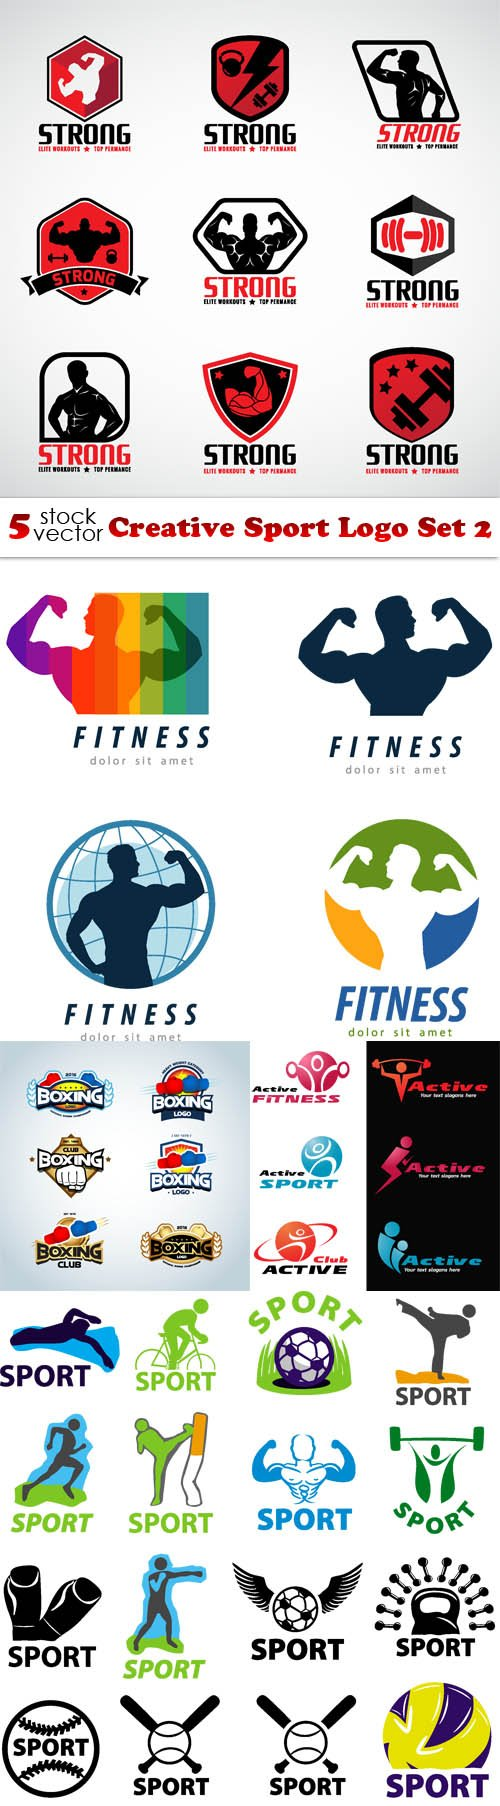 Vectors - Creative Sport Logo Set 2